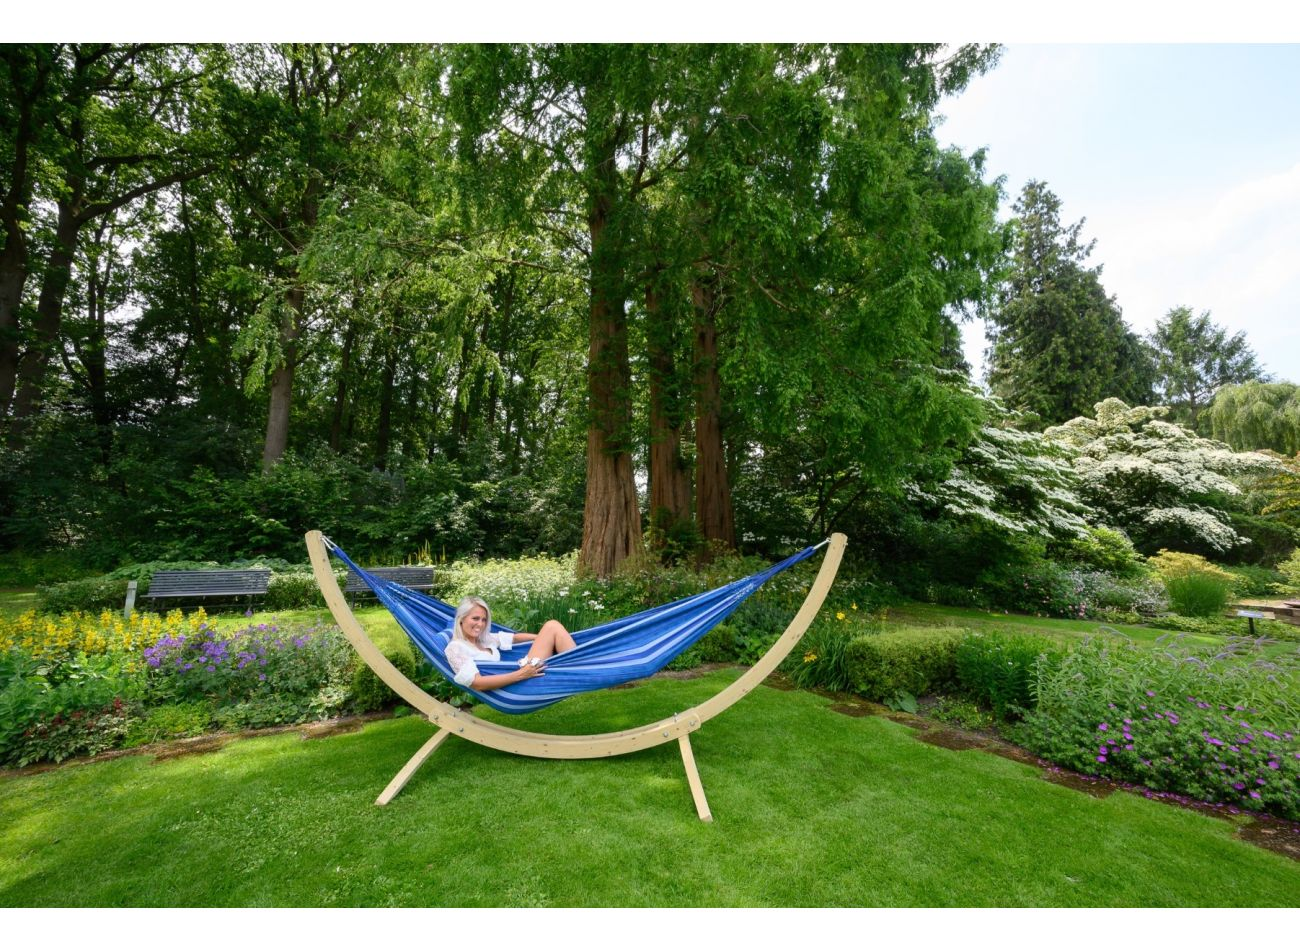 Hammock with 2 Persons Stand Wood & Chill Calm